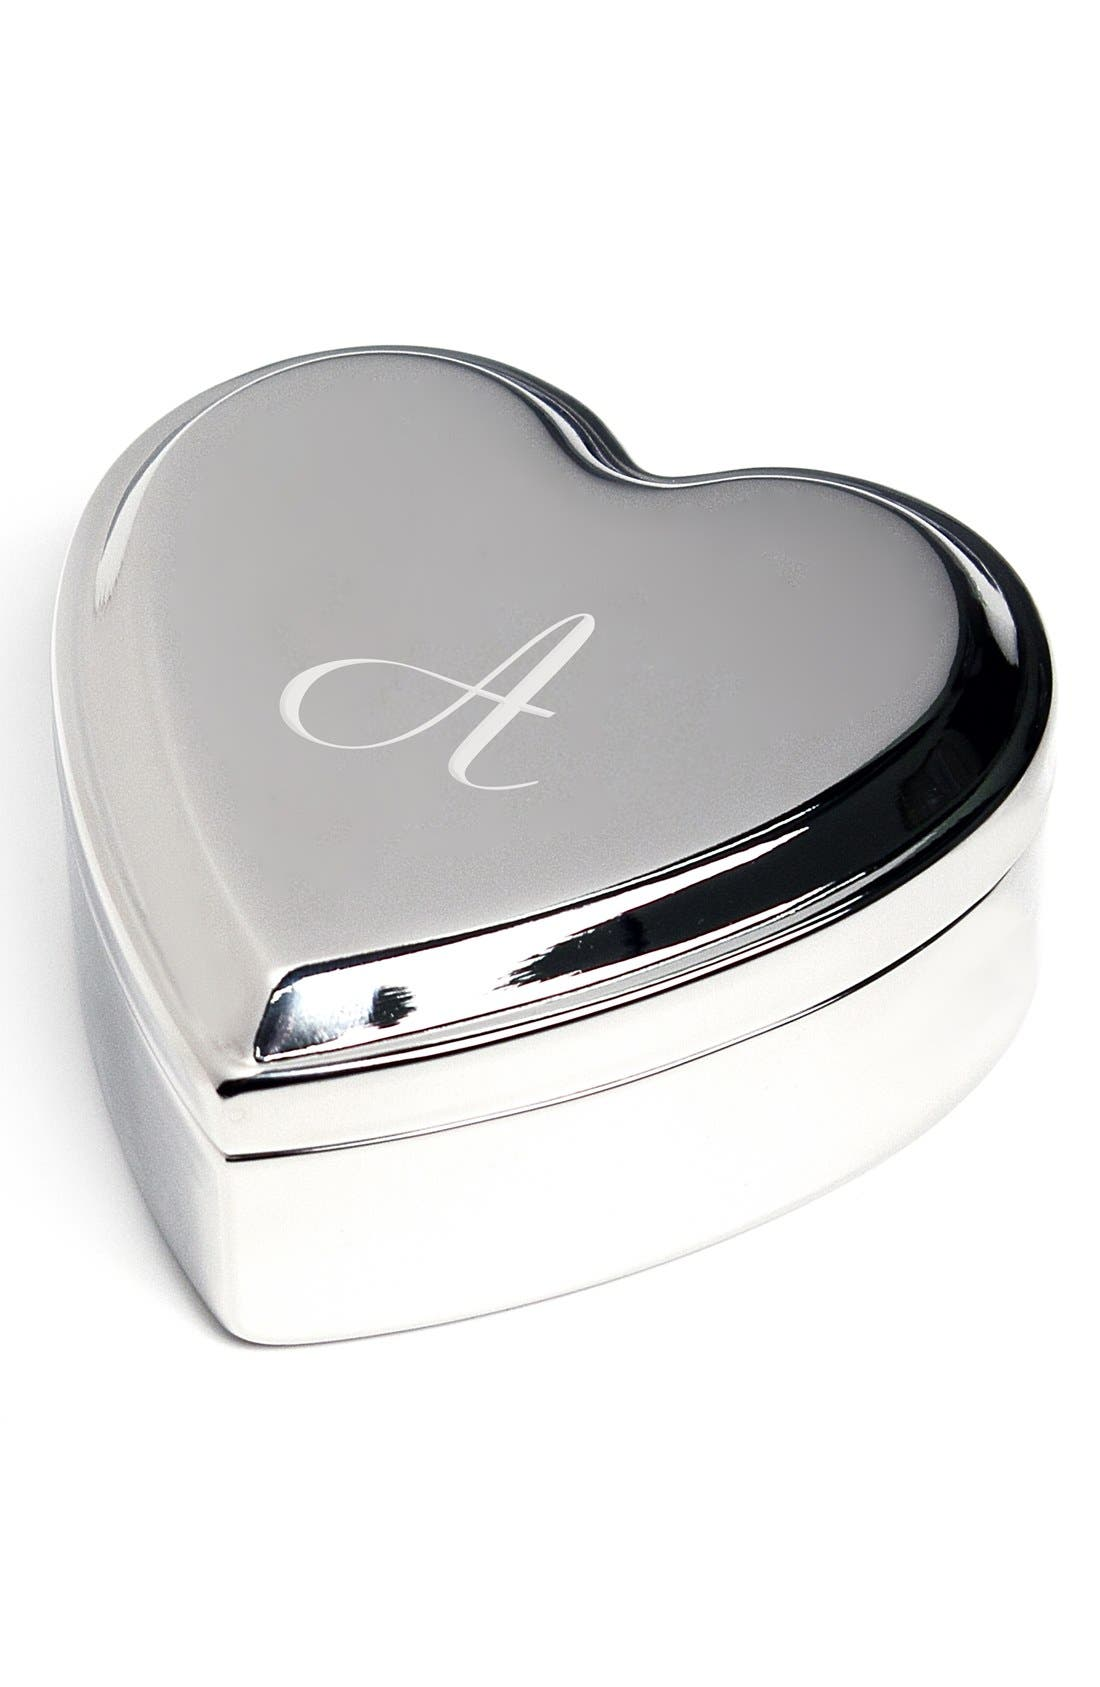 Main Image - Cathy's Concepts Monogram Heart Keepsake Box